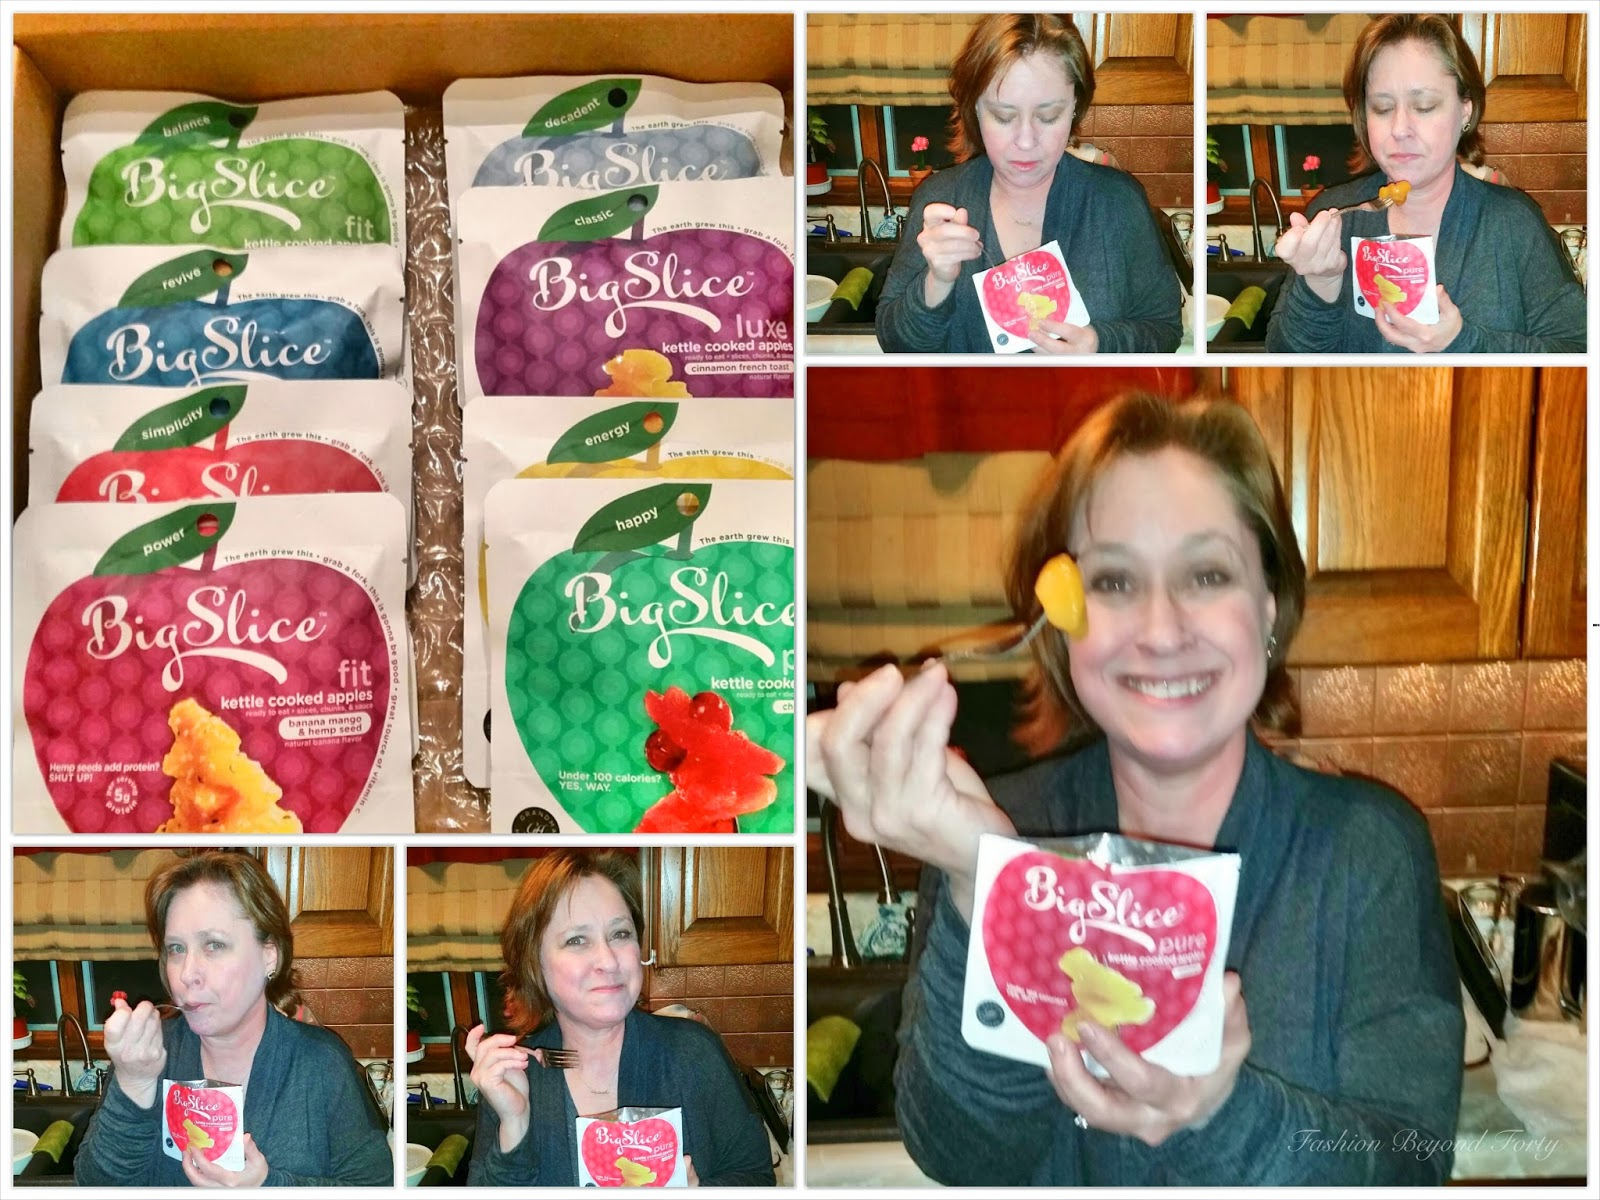 Big Slice Apples Perfect for Diabetics - A Review